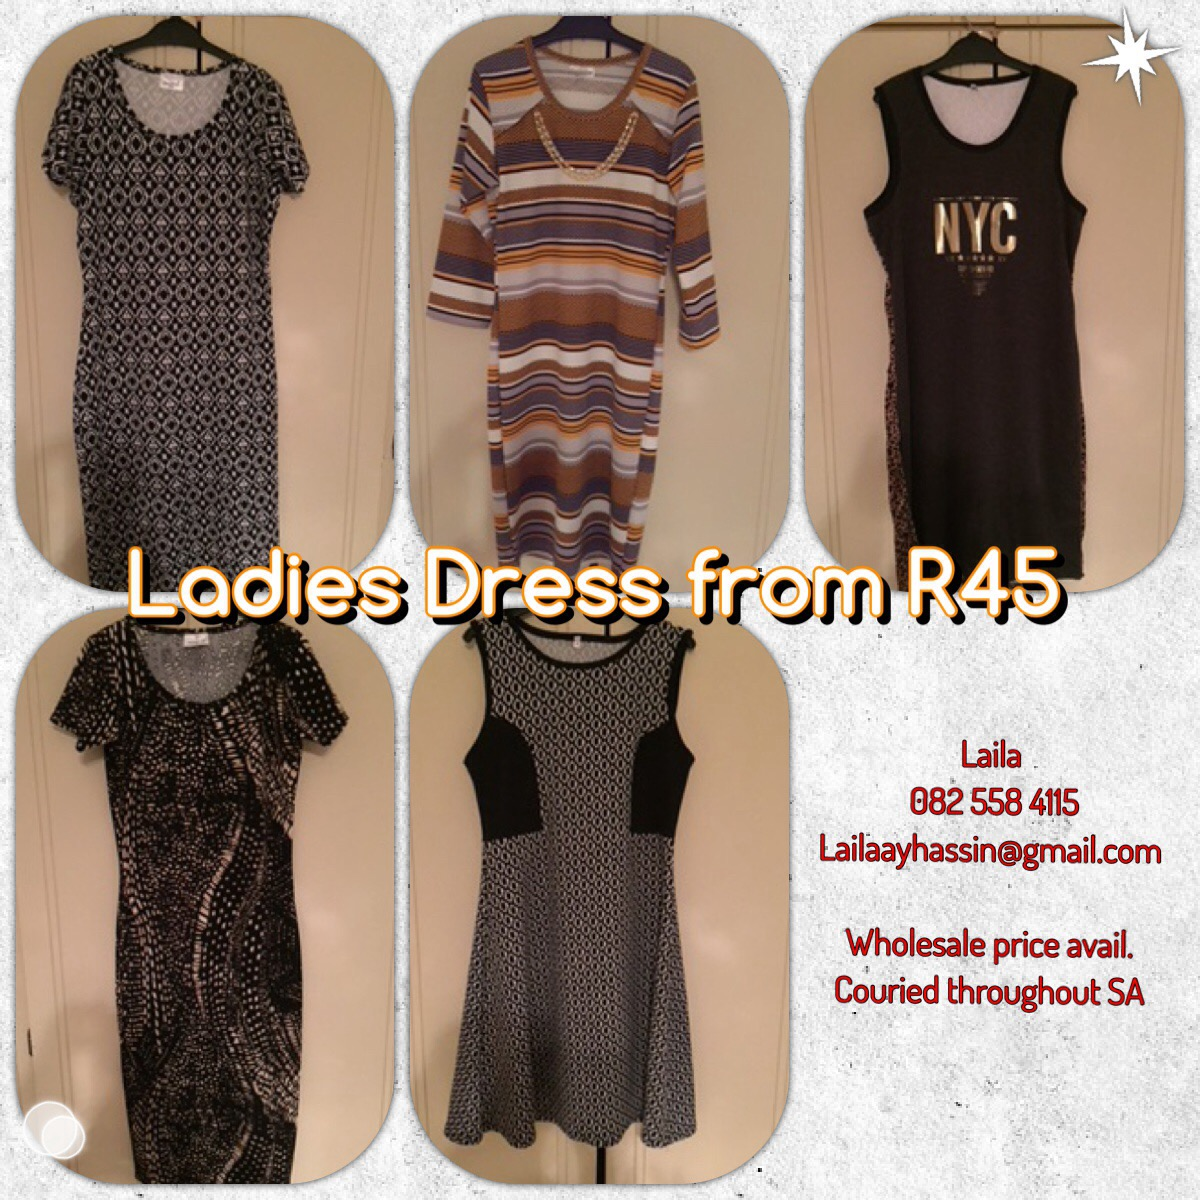 NEW Clothes , SALE Prices for Easter from R10